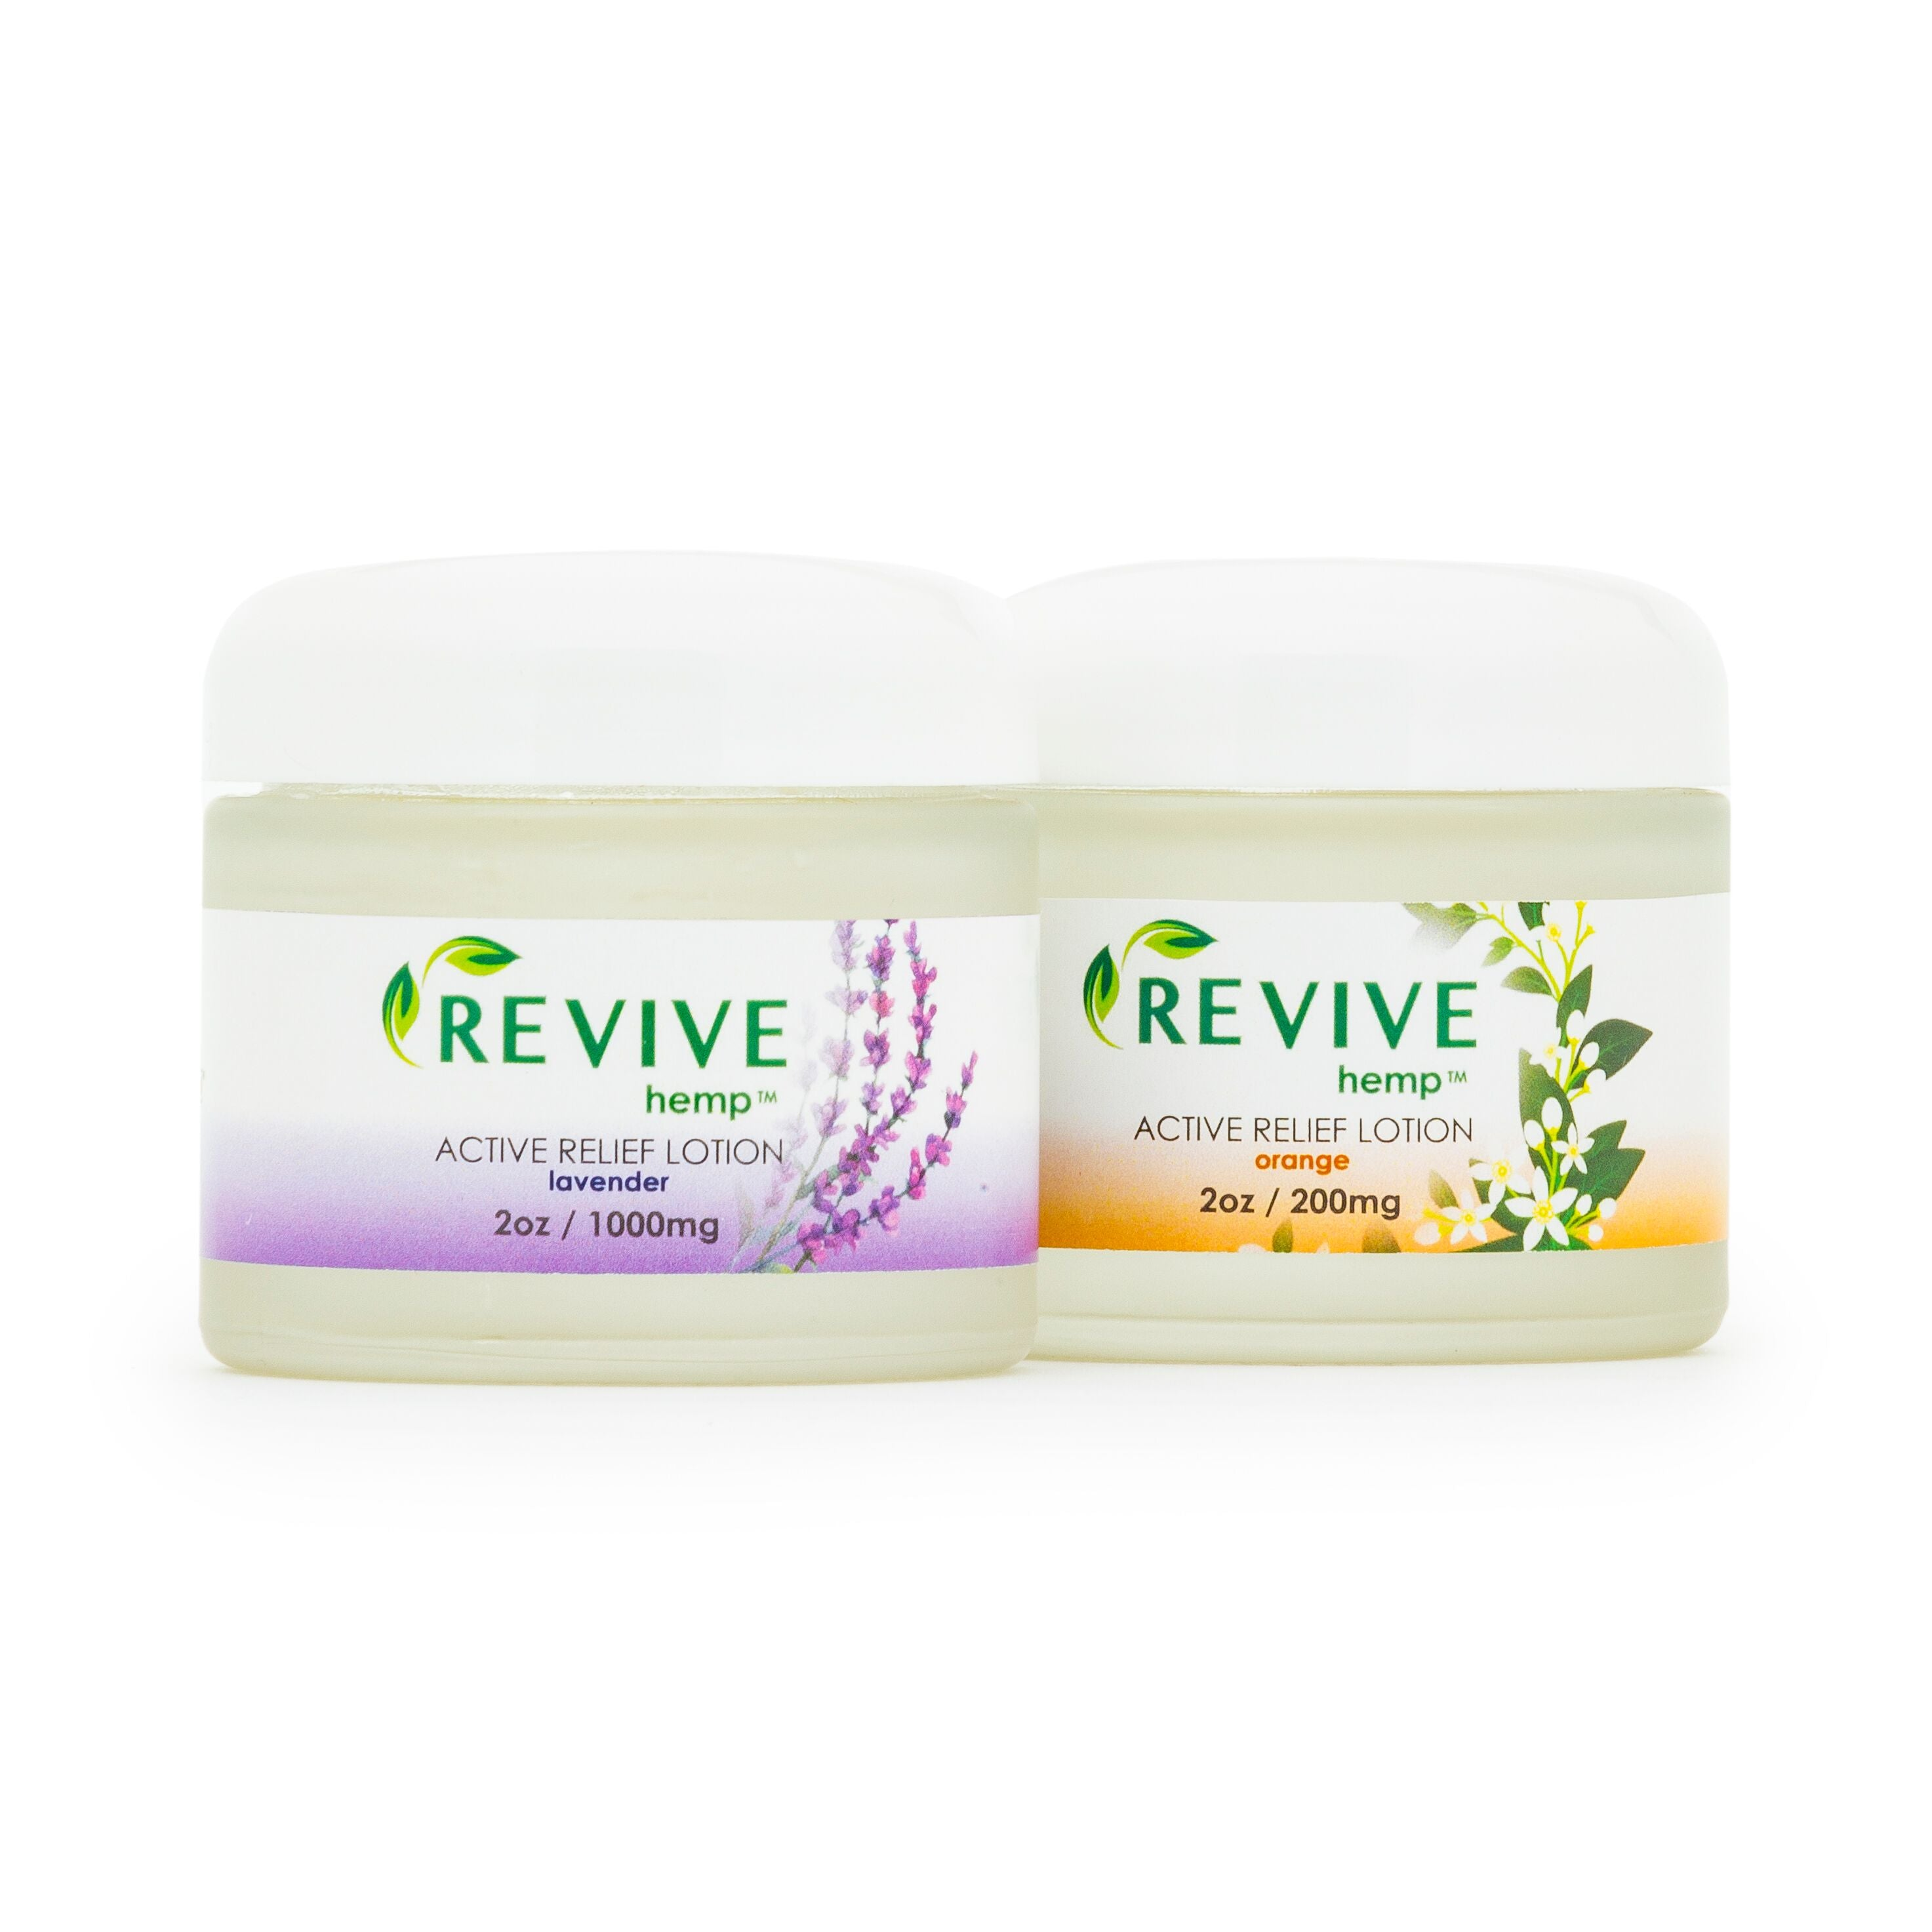 Revive Hemp Active Relief Lotion